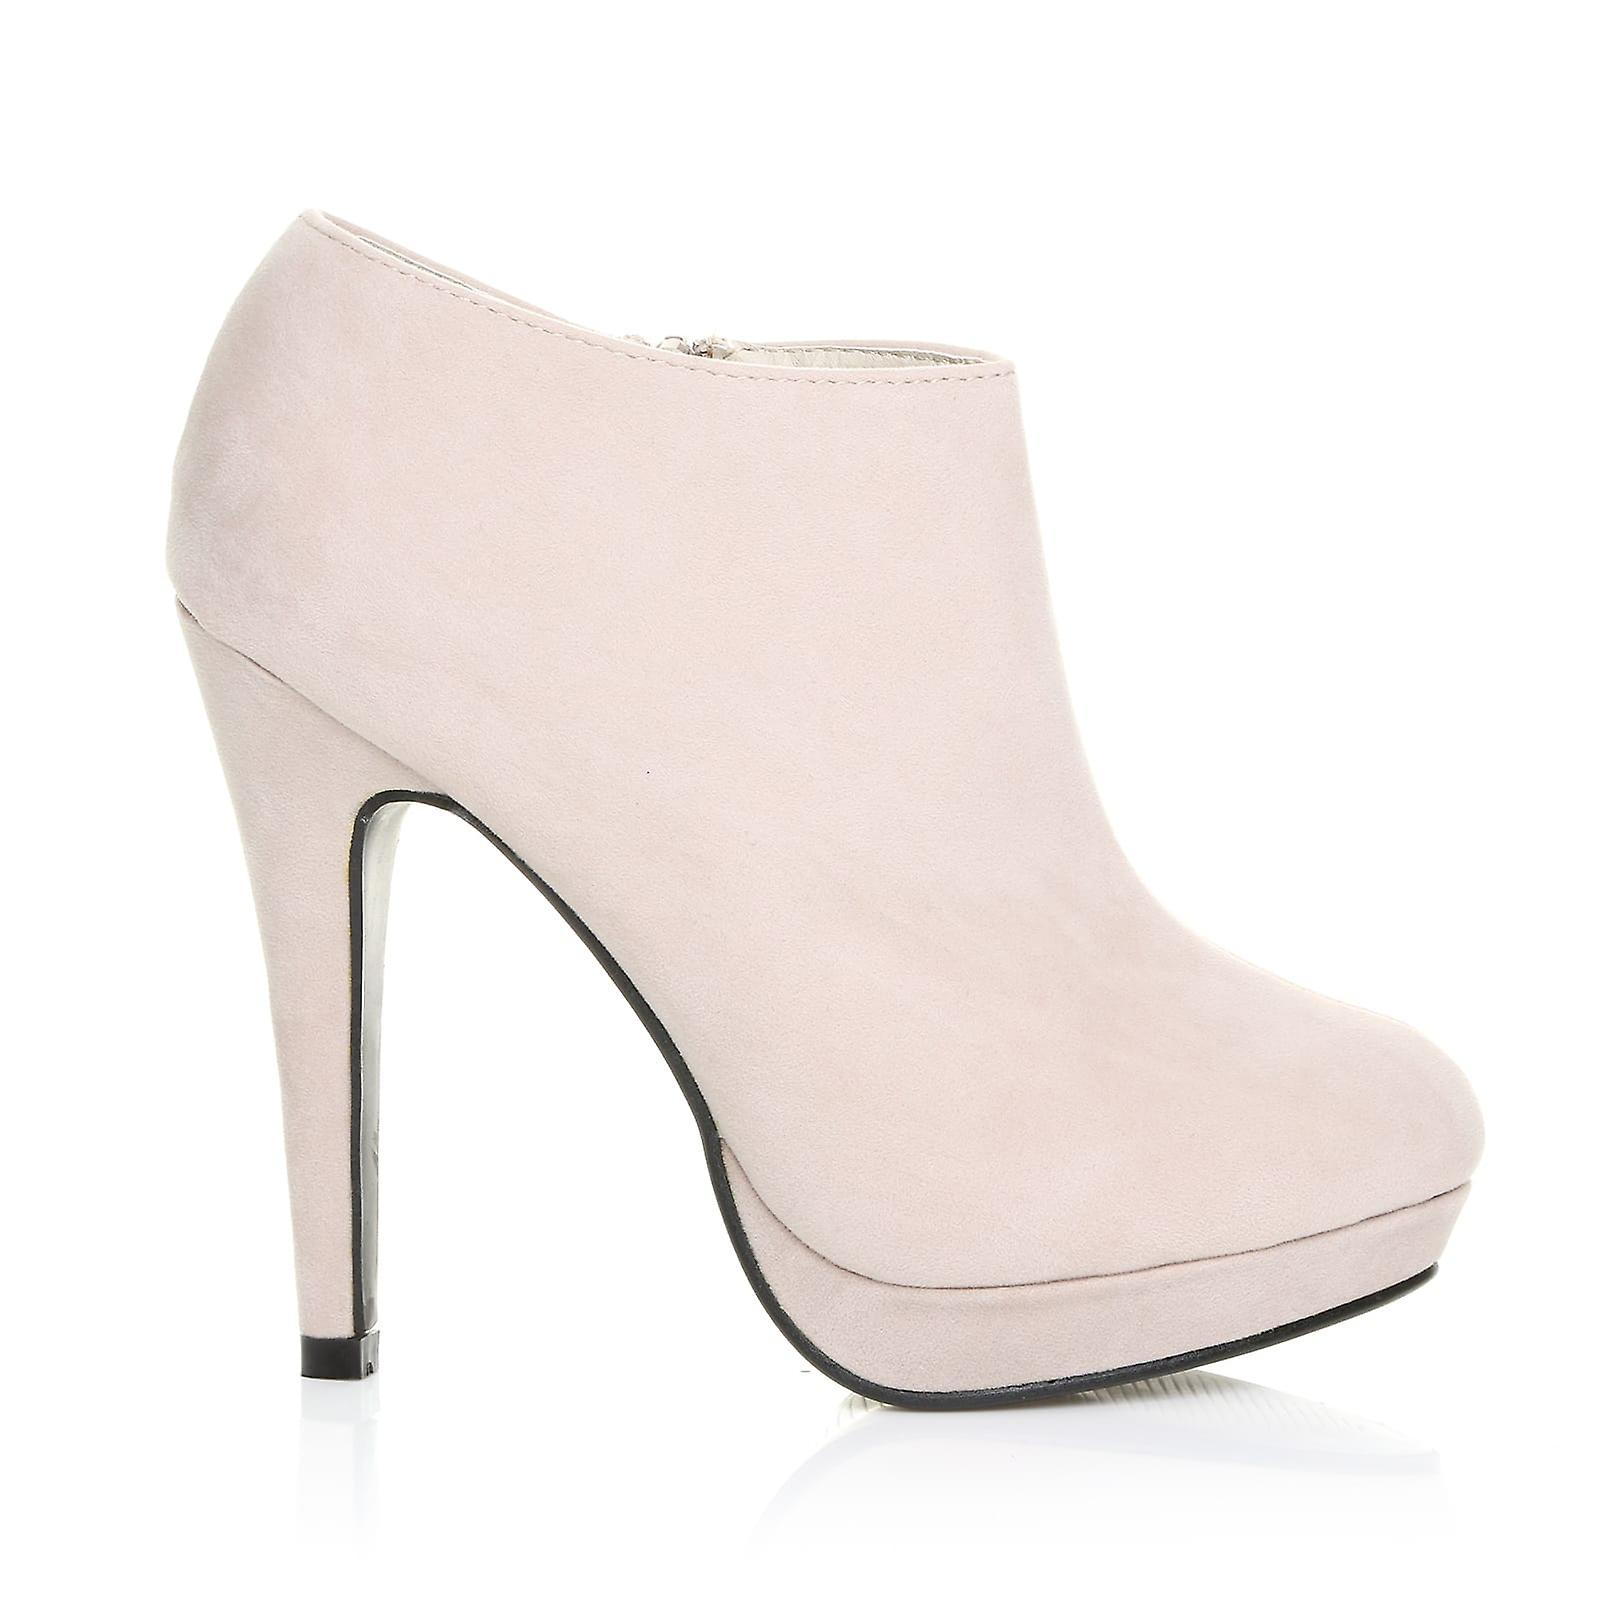 H20 Nude Faux Suede Stilleto Shoe Very High Heel Ankle Shoe Stilleto Boots 8325c9